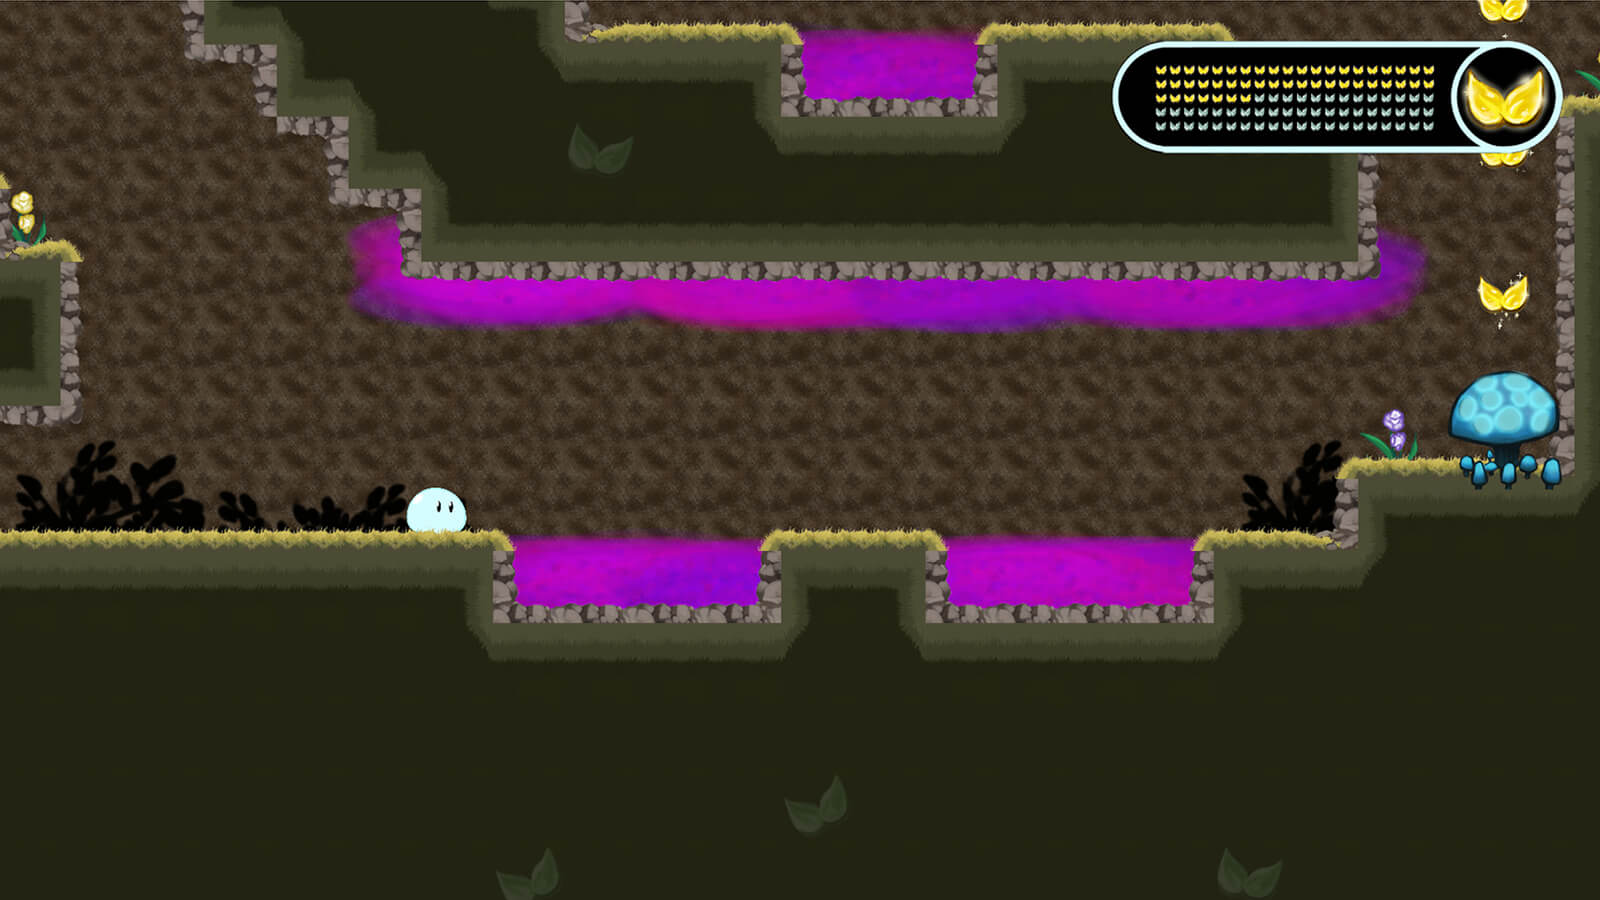 A round slime character in an underground tunnel, faced with pits of deadly pink goop on the floor and ceiling.